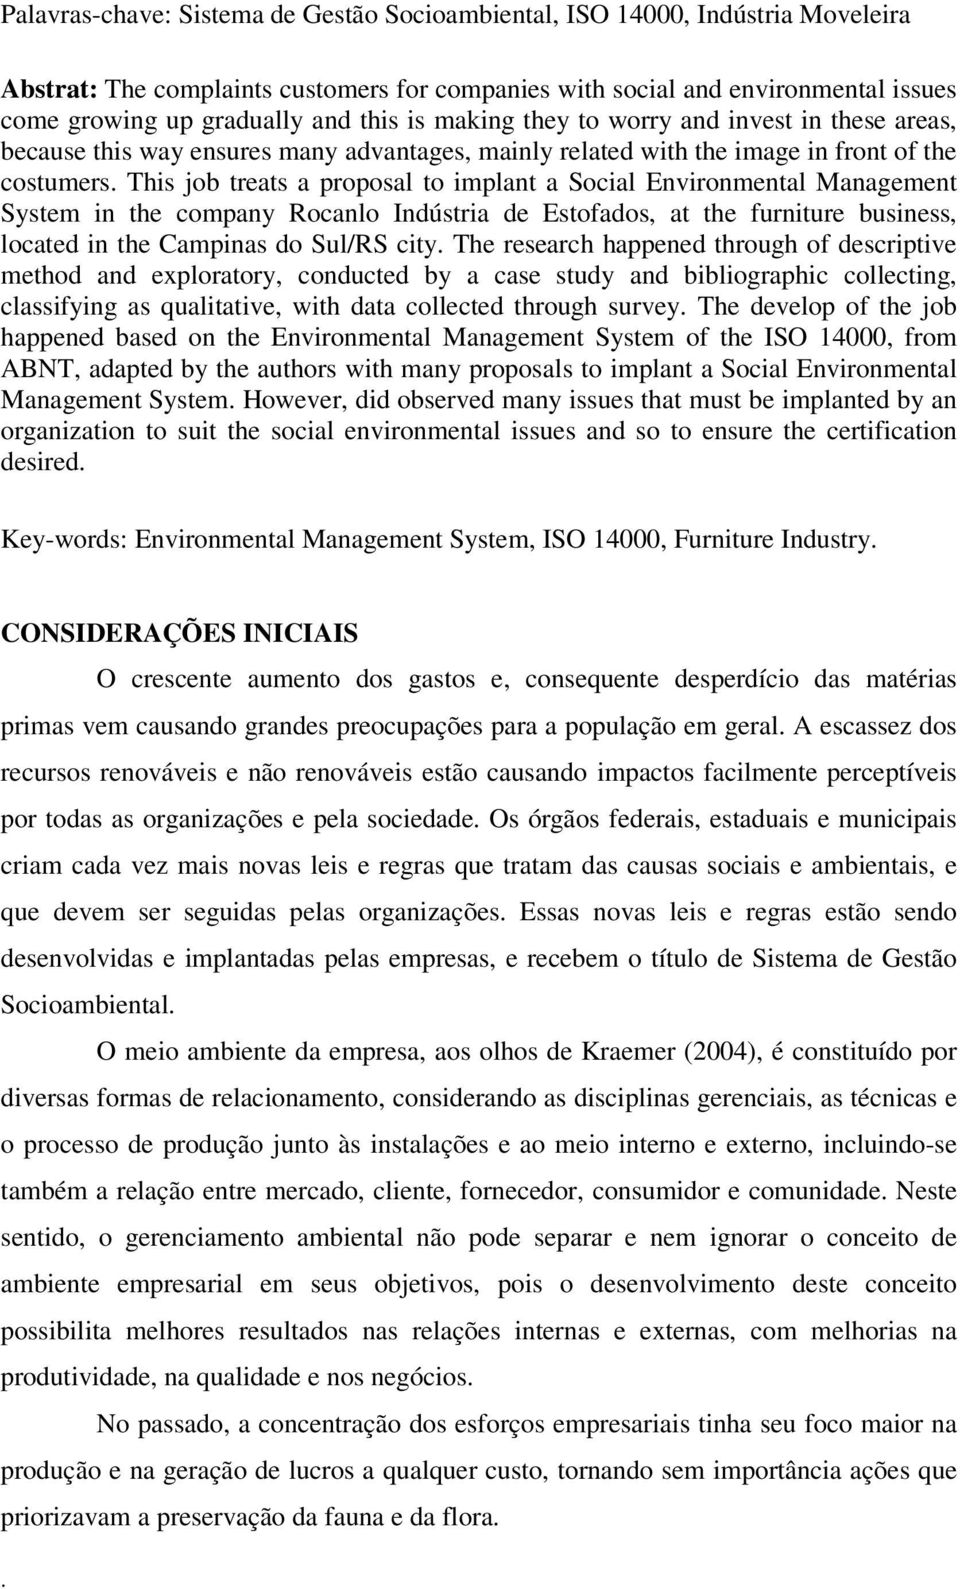 Social Environmental Management System in the company Rocanlo Indústria de Estofados, at the furniture business, located in the Campinas do Sul/RS city The research happened through of descriptive